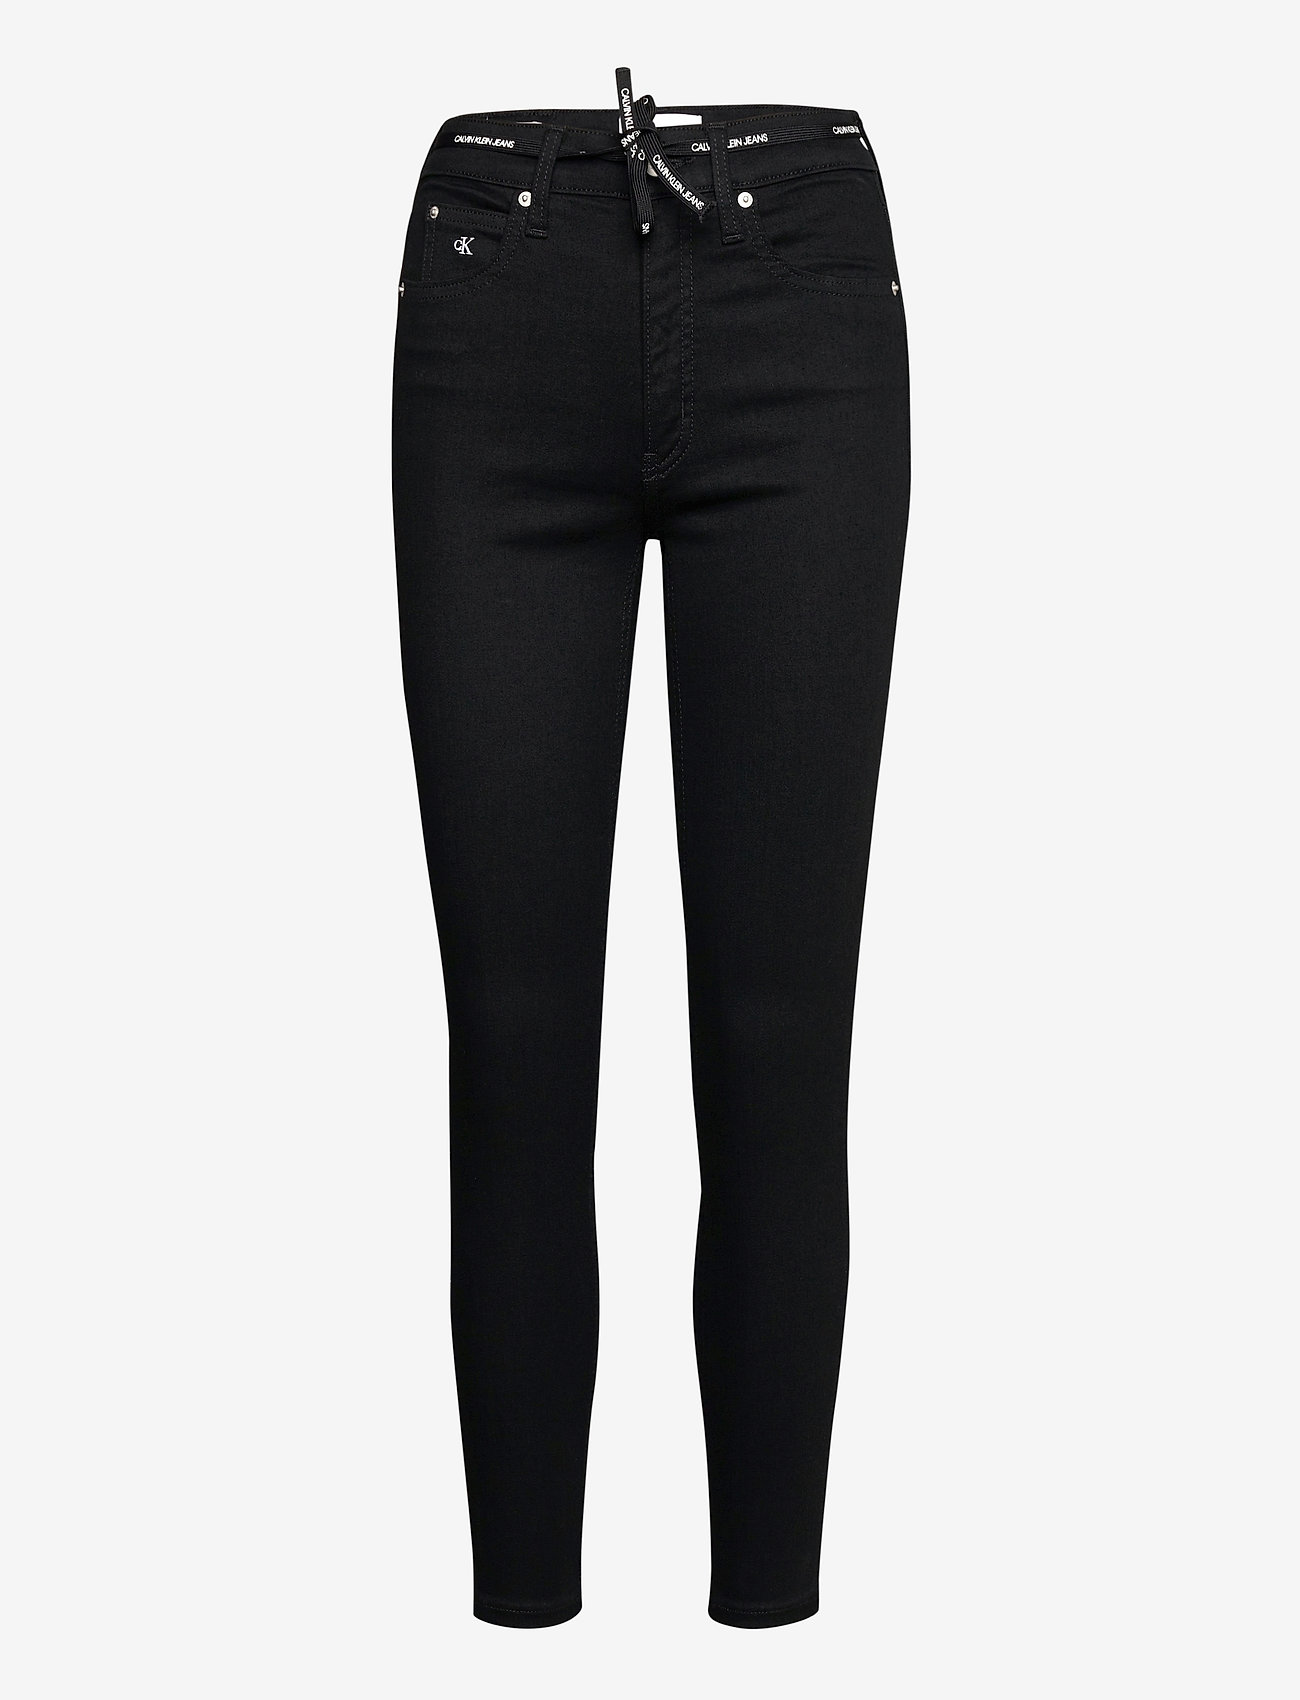 Calvin Klein Jeans - HIGH RISE SUPER SKINNY ANKLE - skinny jeans - bb217 - rinse black lace wb - 0